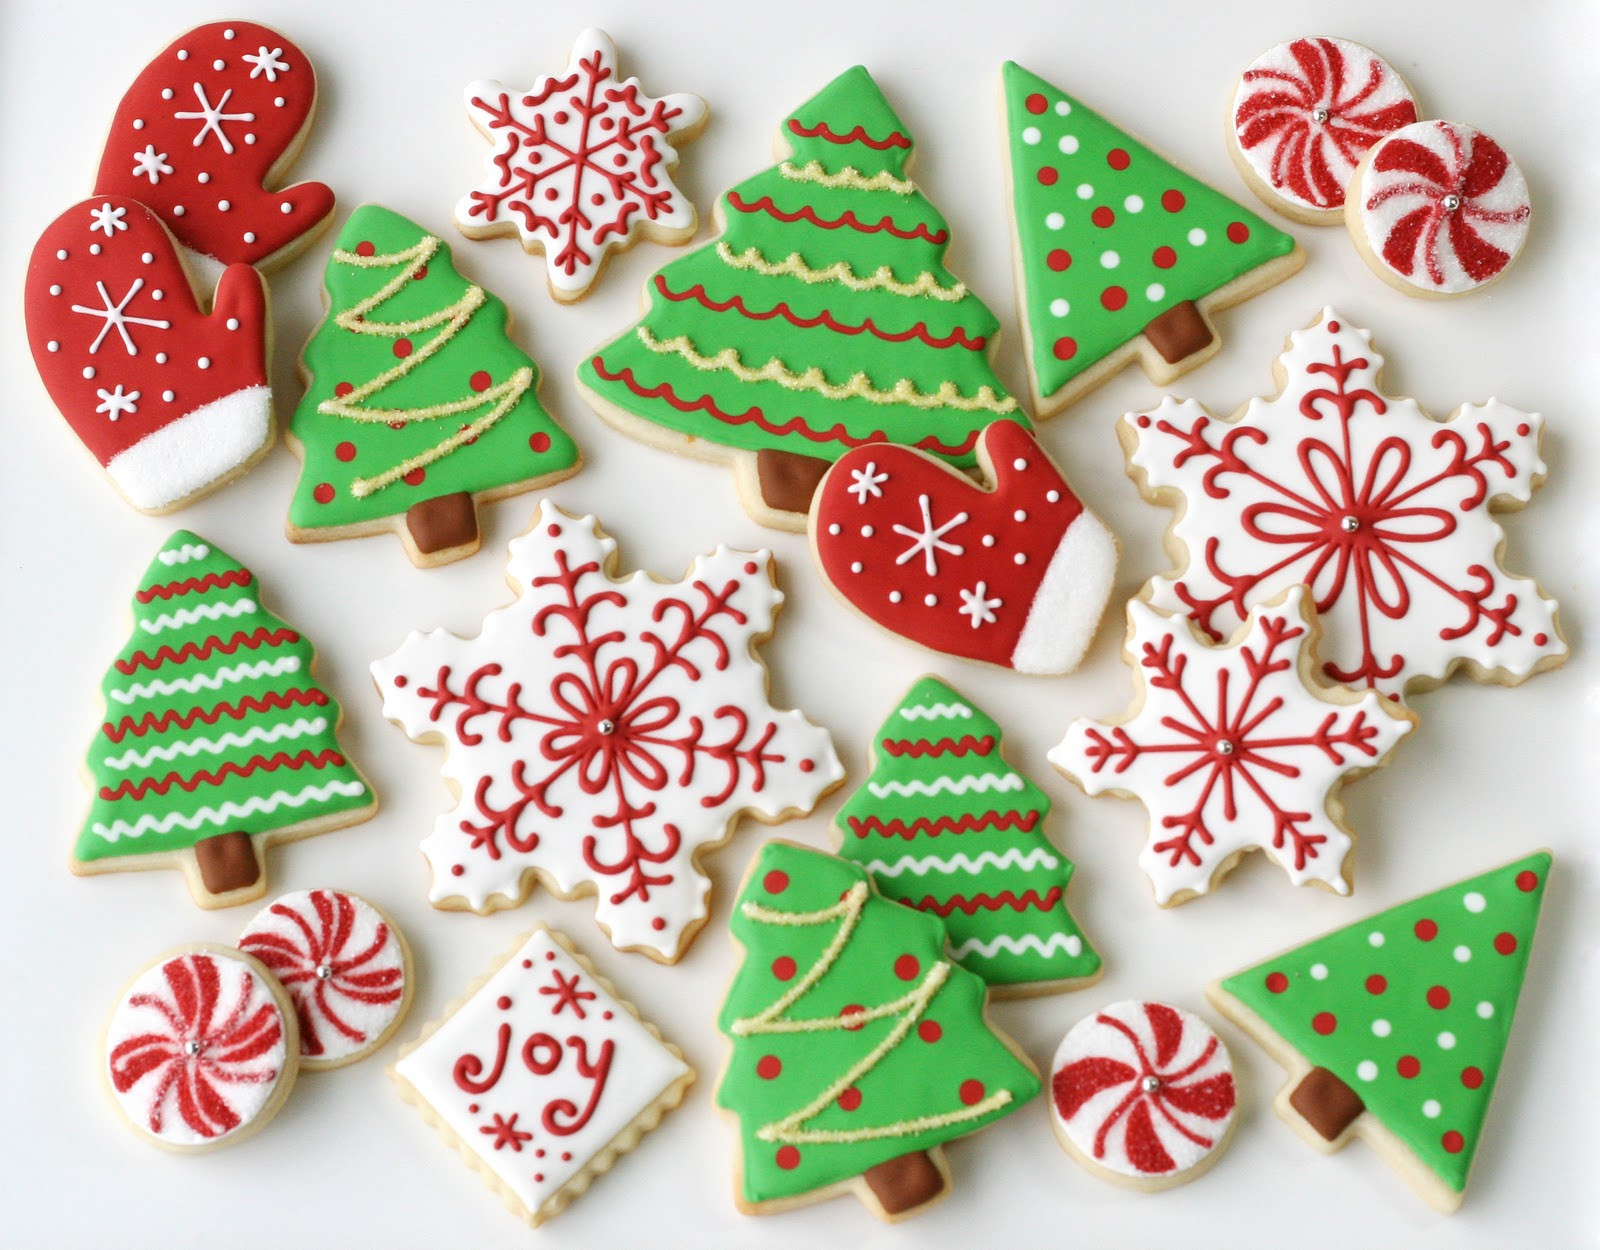 Christmas Cookies Image  Christmas Cookies Galore Glorious Treats